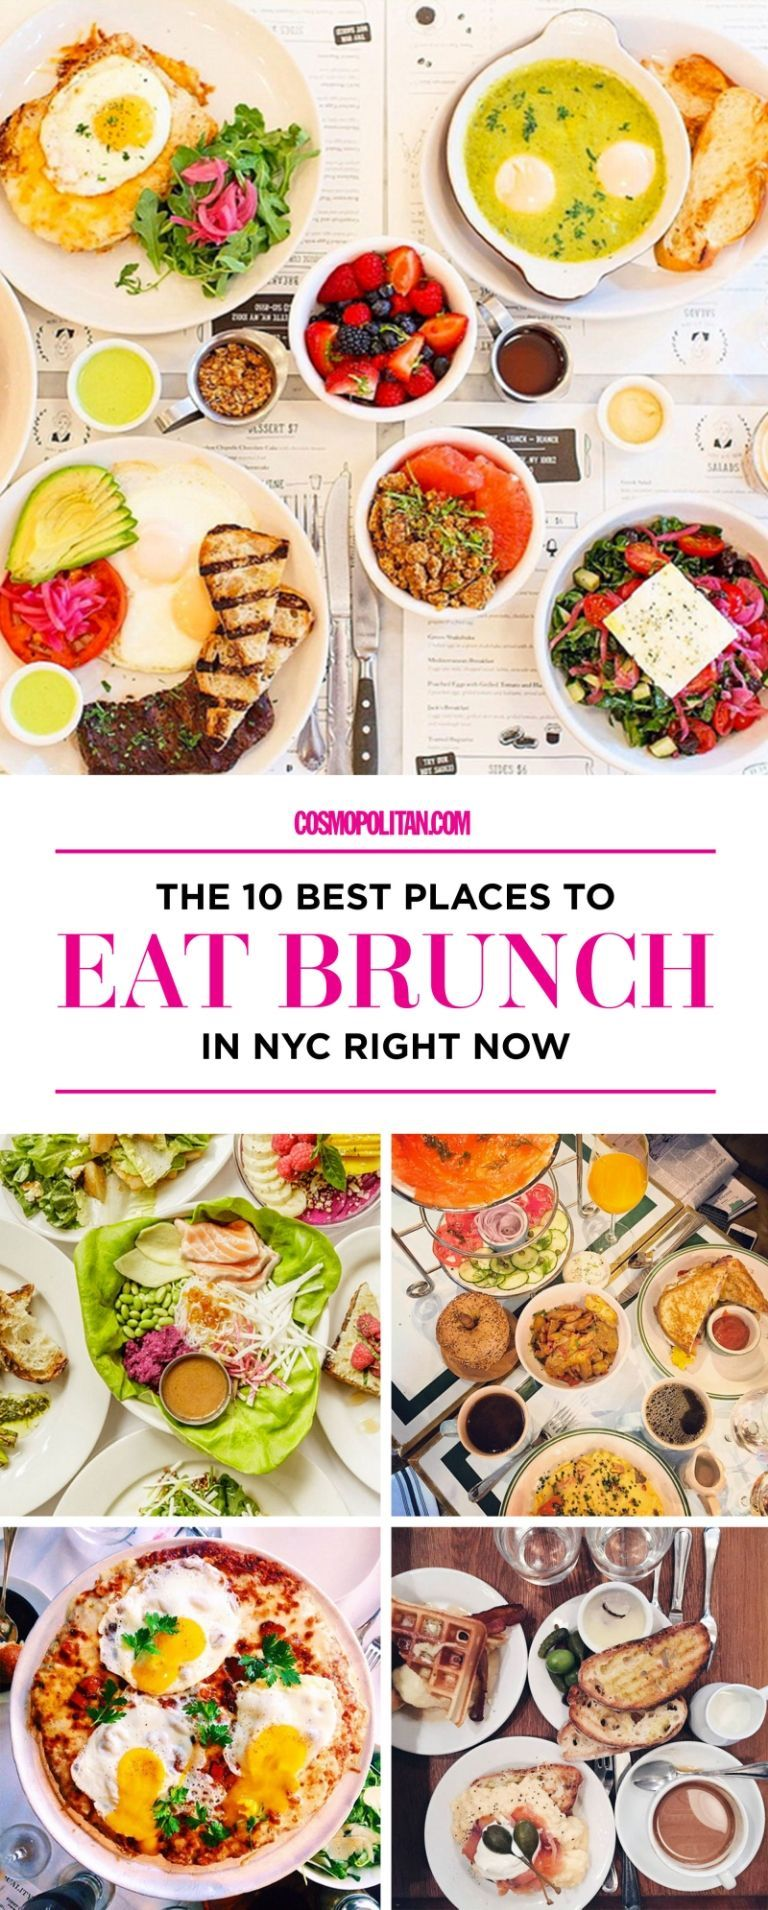 Psa These Are The 25 Best Places To Eat Brunch In Nyc Right Now Brunch Nyc New York Food Brunch New York